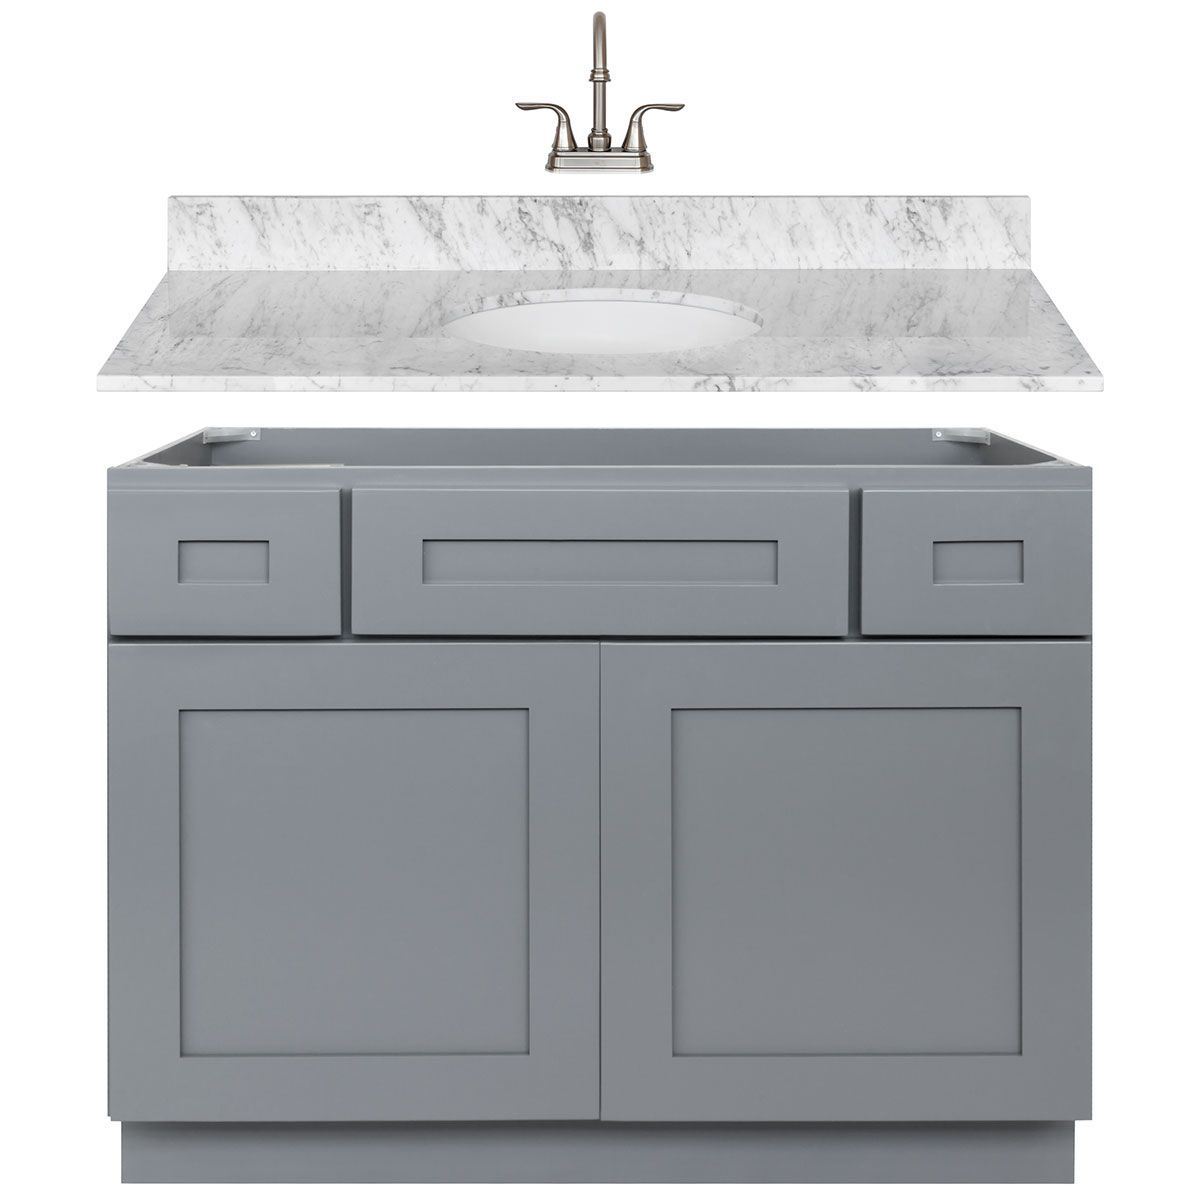 LessCare Colonial Gray Cabinets - Kitchen Cabinets - Kitchen